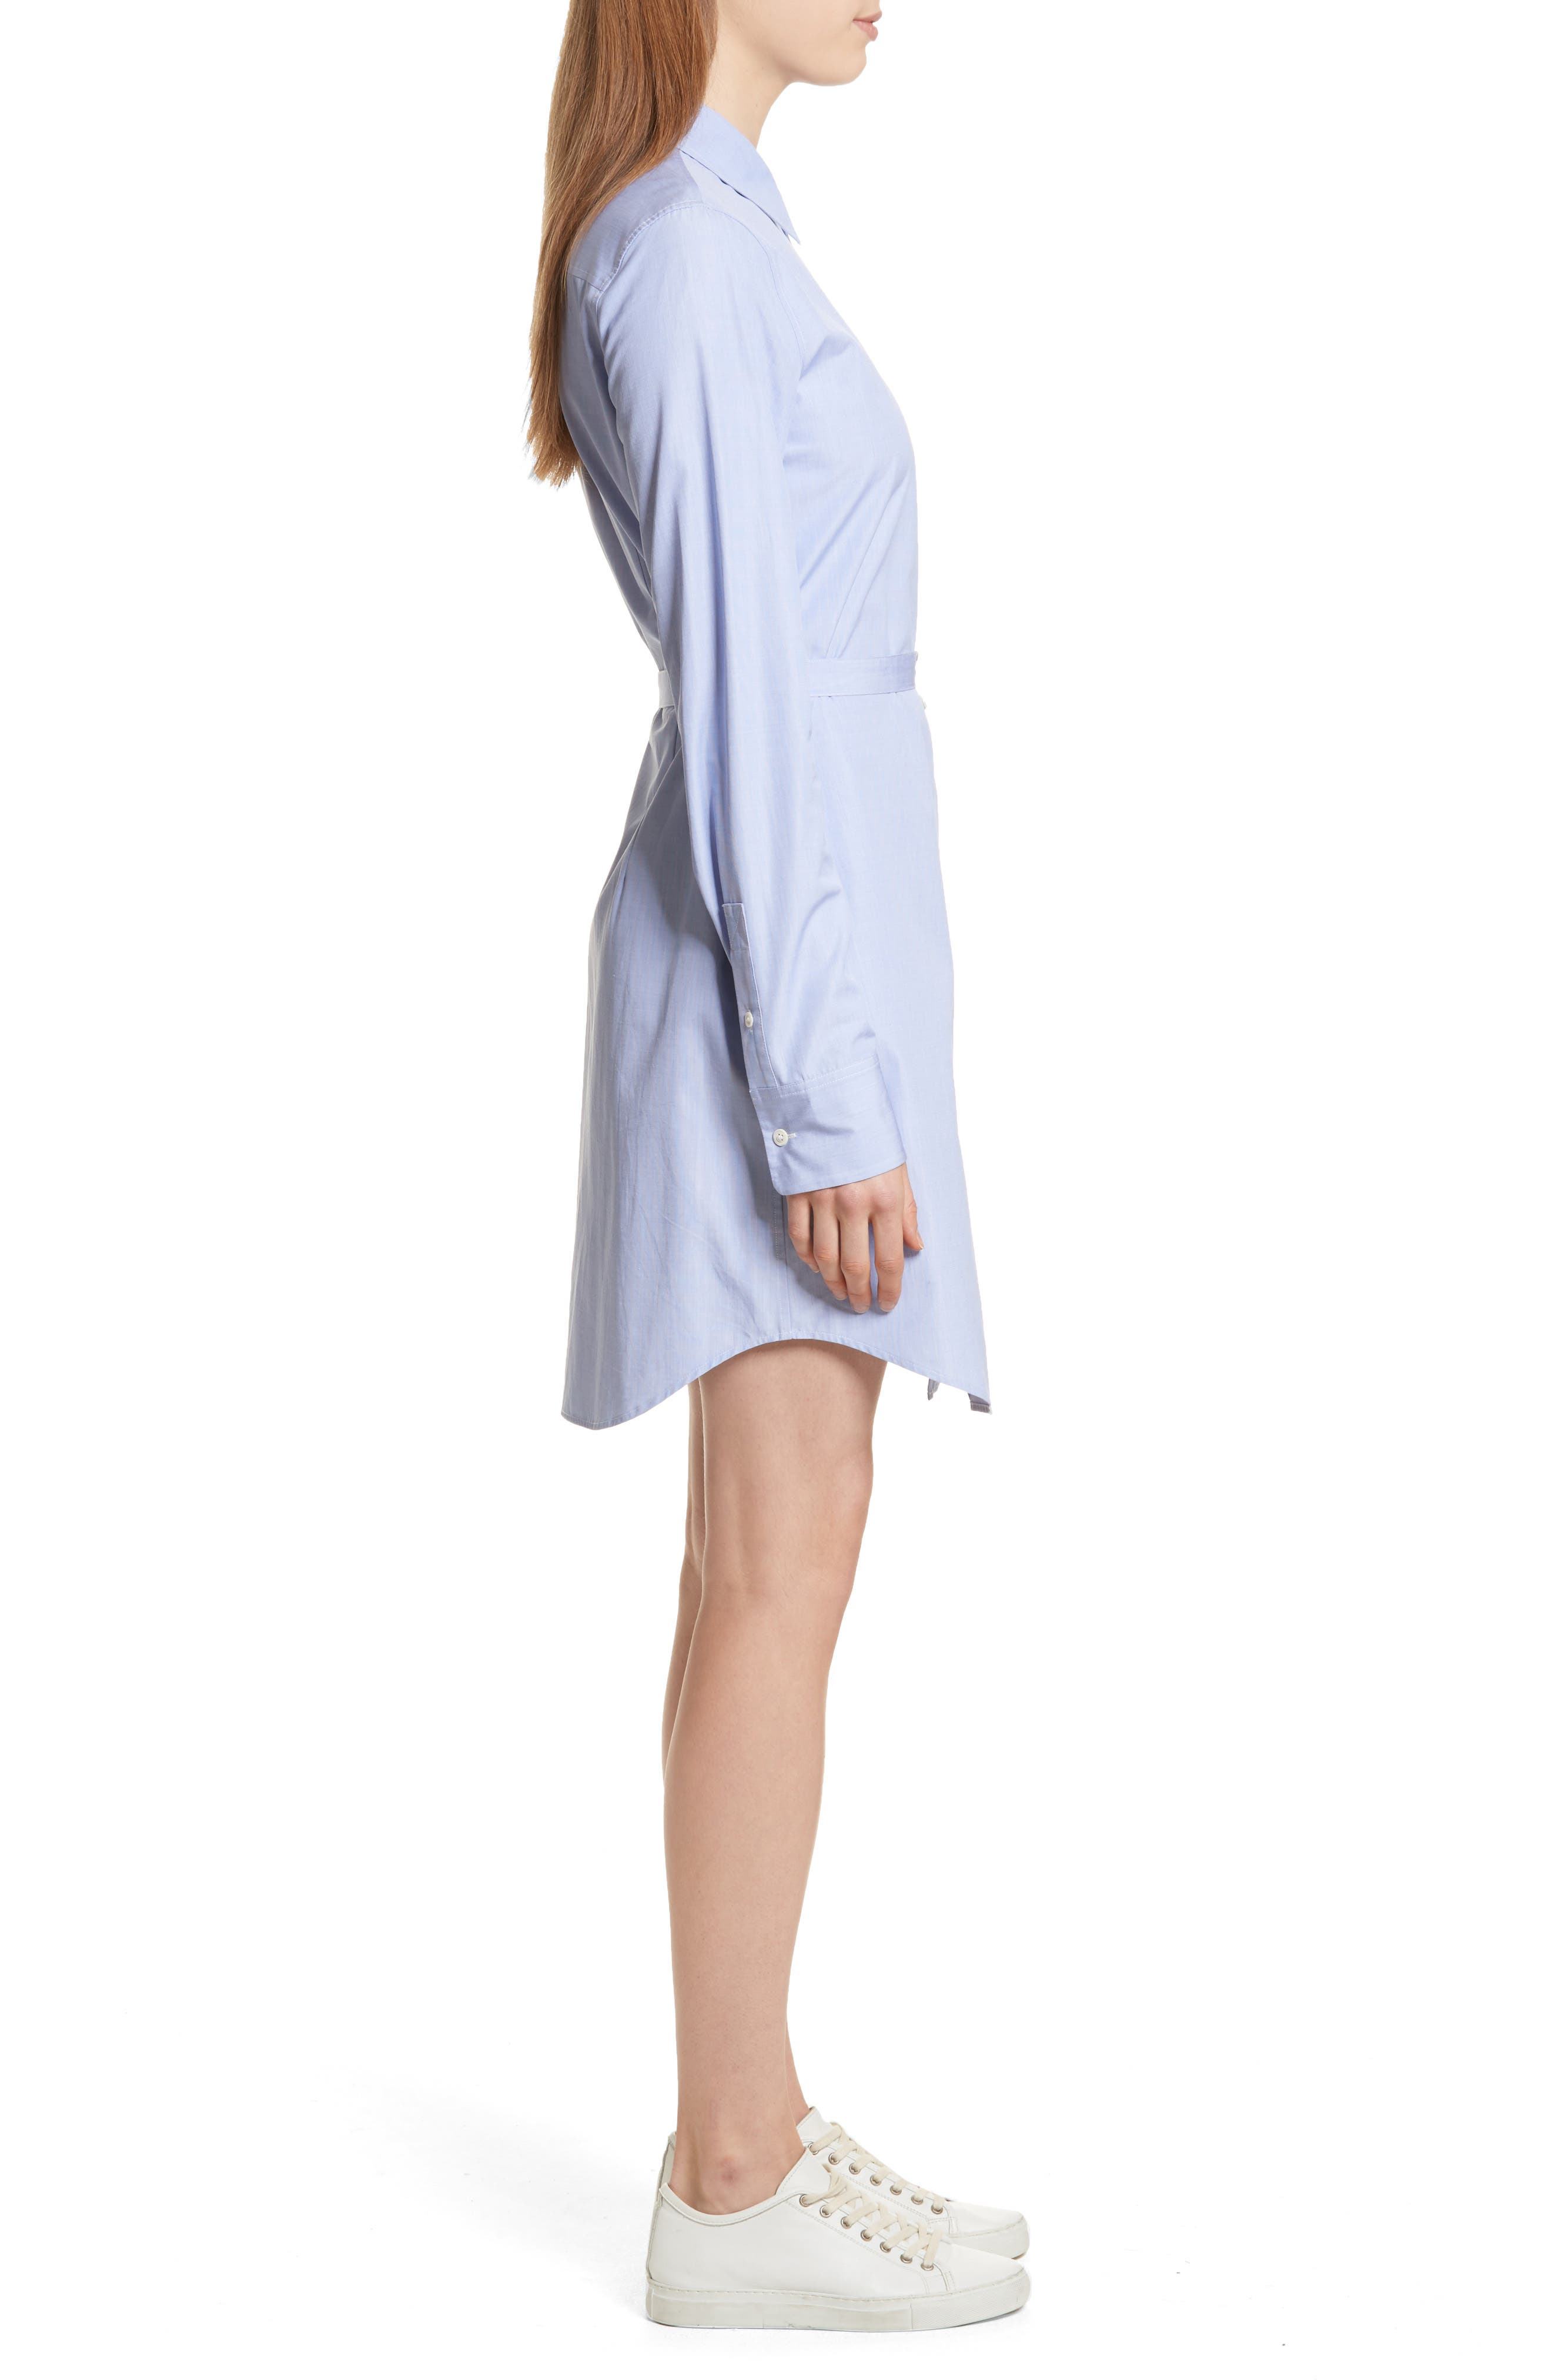 Crowley Cotton Shirtdress,                             Alternate thumbnail 3, color,                             473